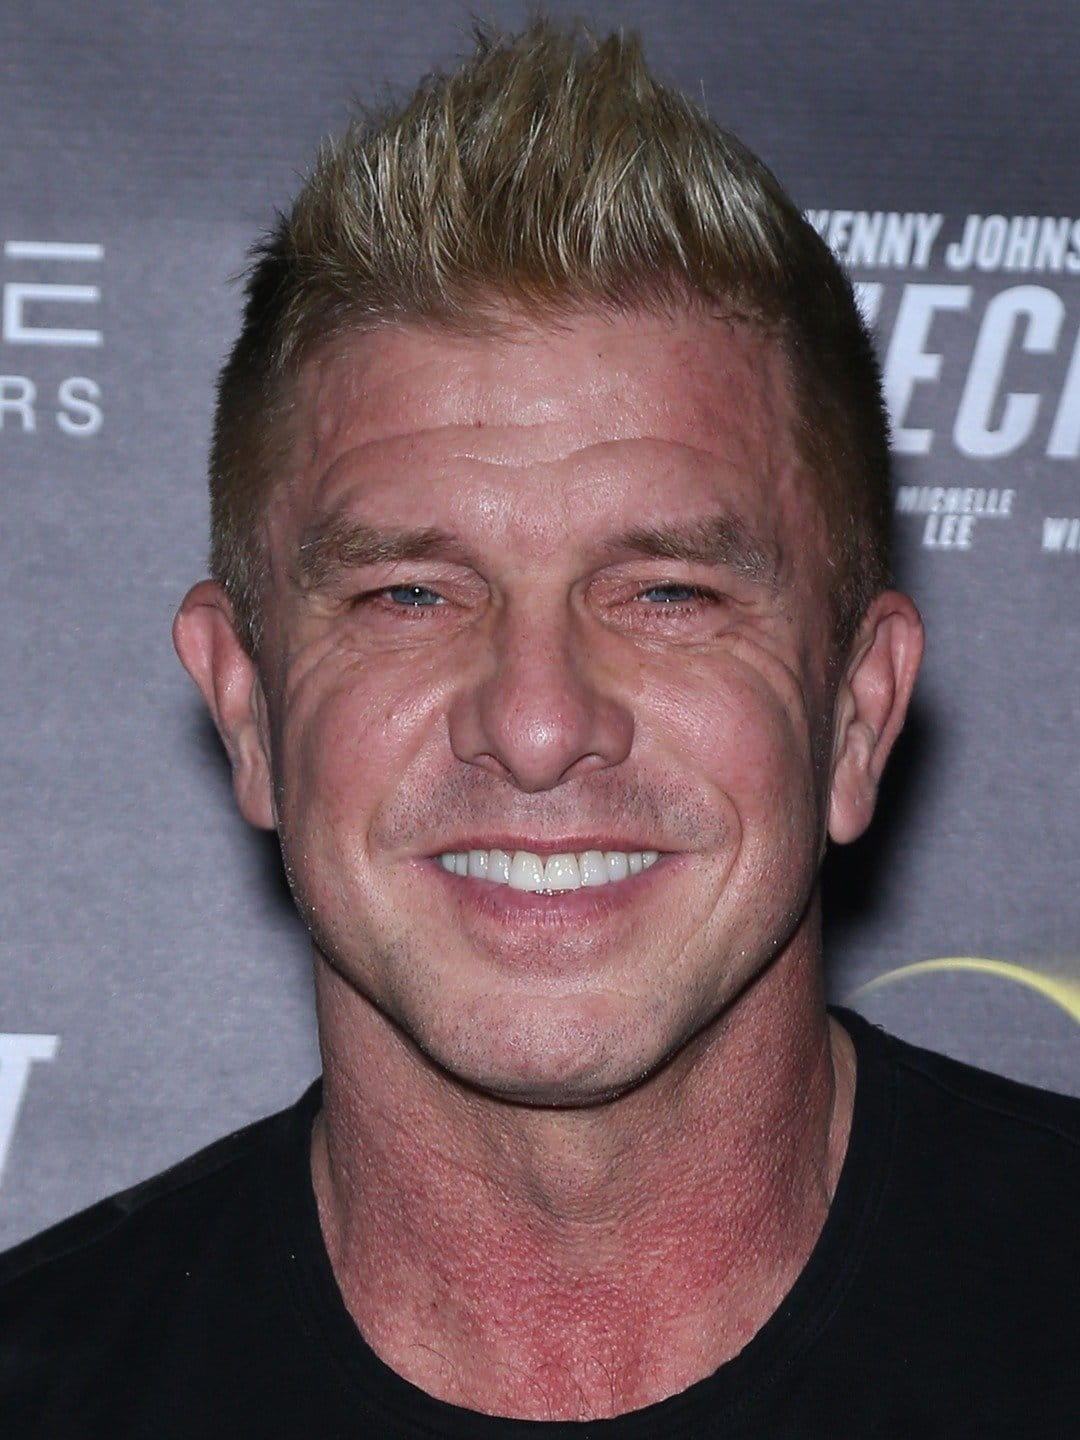 Kenny Johnson facts